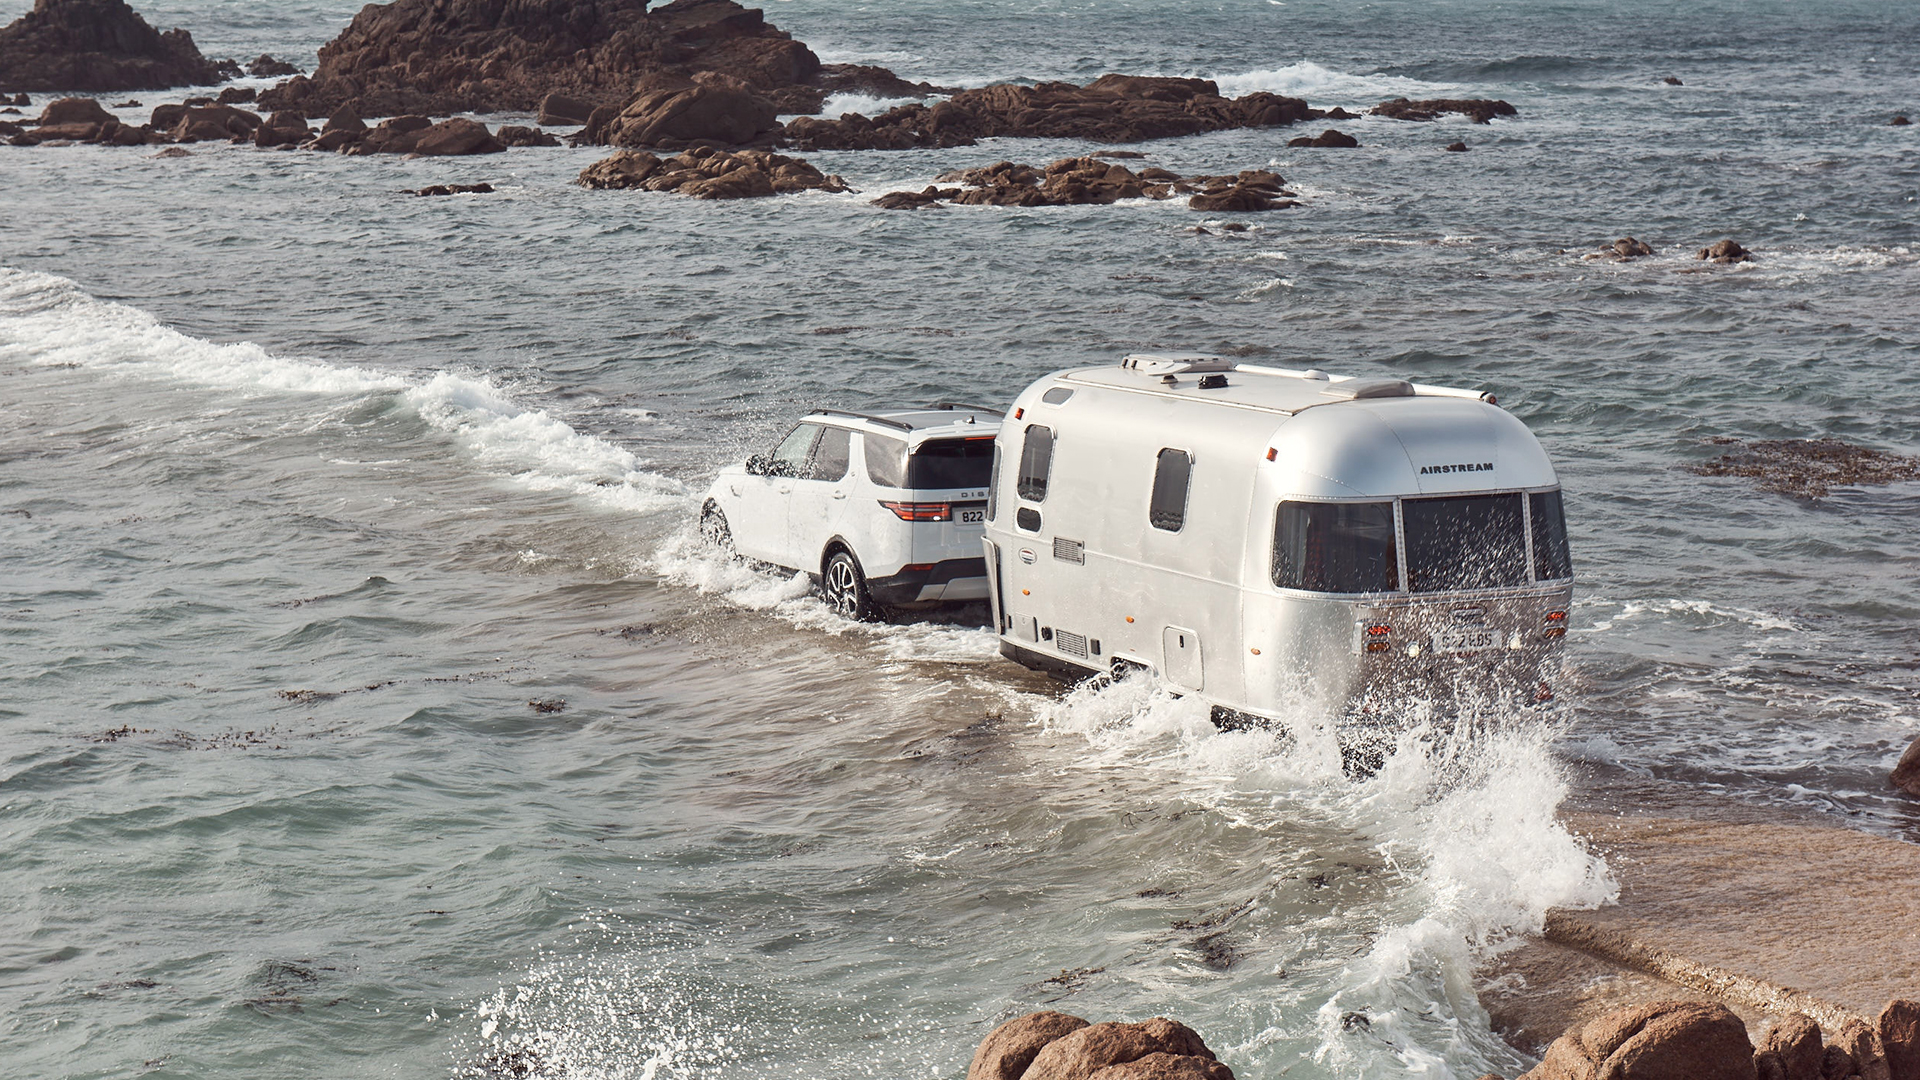 Airstream-Travel-Trailer-with-Land-Rover-Tow-Assist-Technology-in-High-Tide